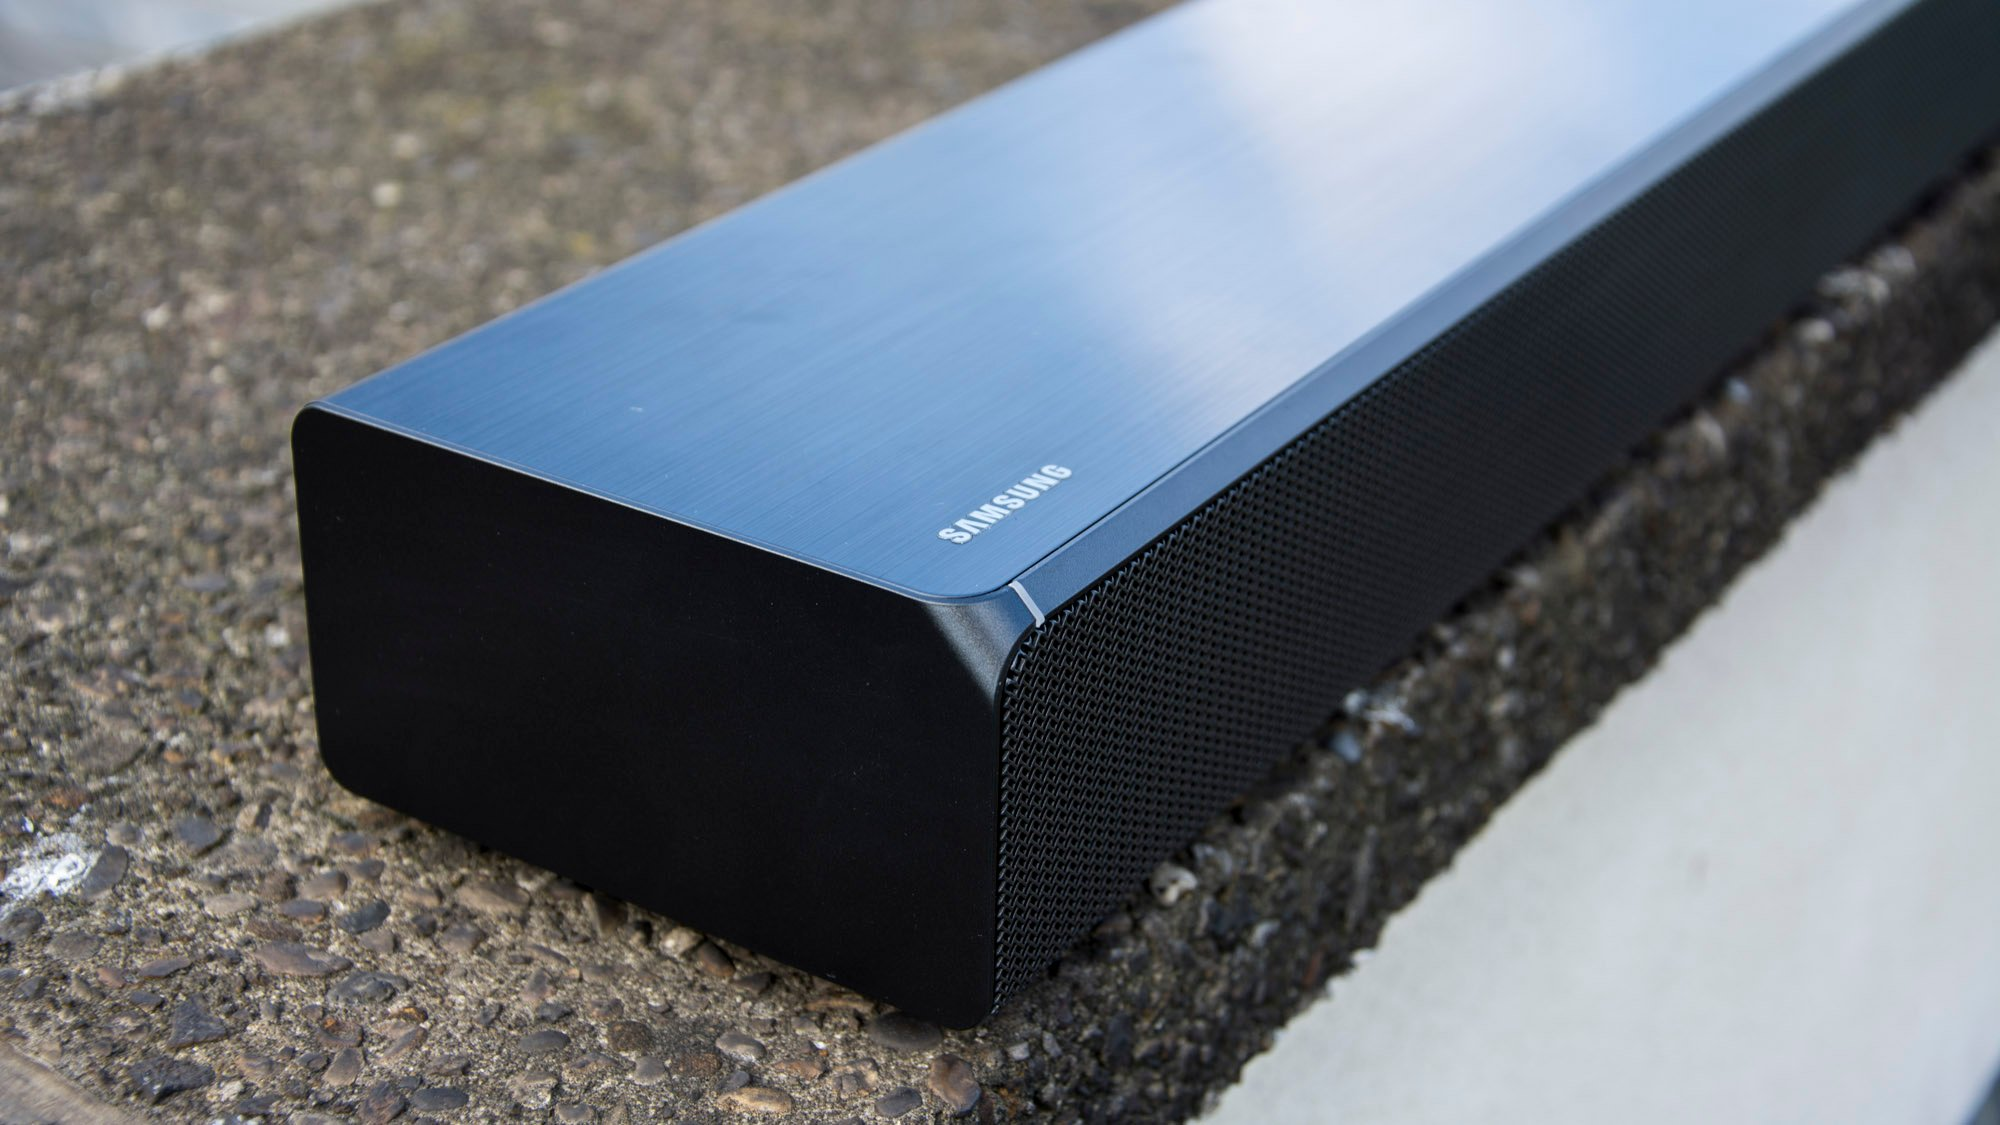 Samsung HW-MS650 review: This innovative soundbar is now cheaper